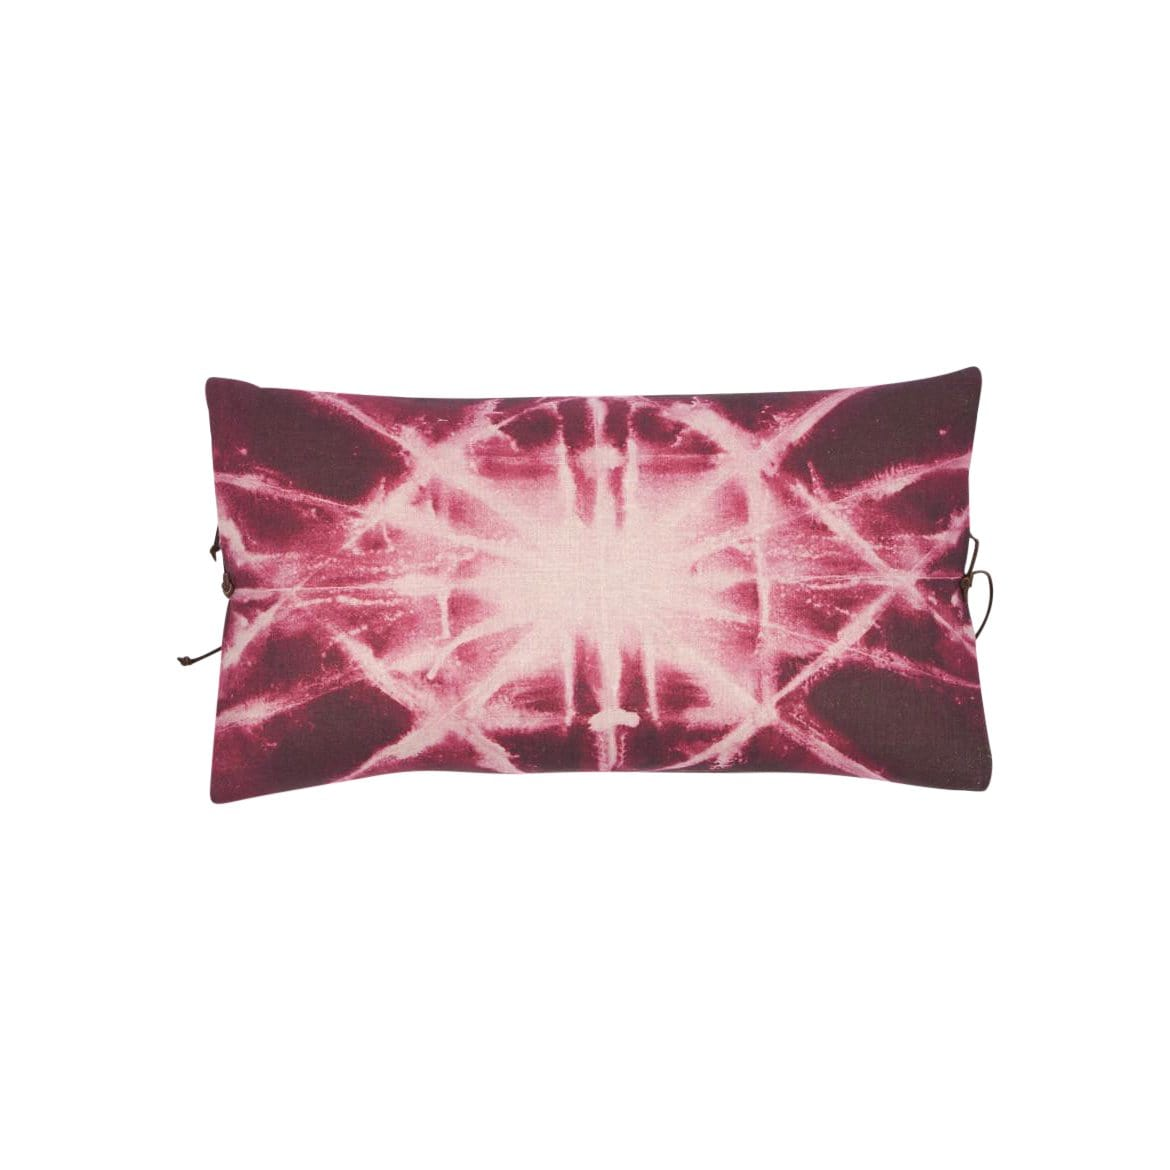 Michele Varian Cushions & Throws Default Printed Linen Pillow Starburst Plum